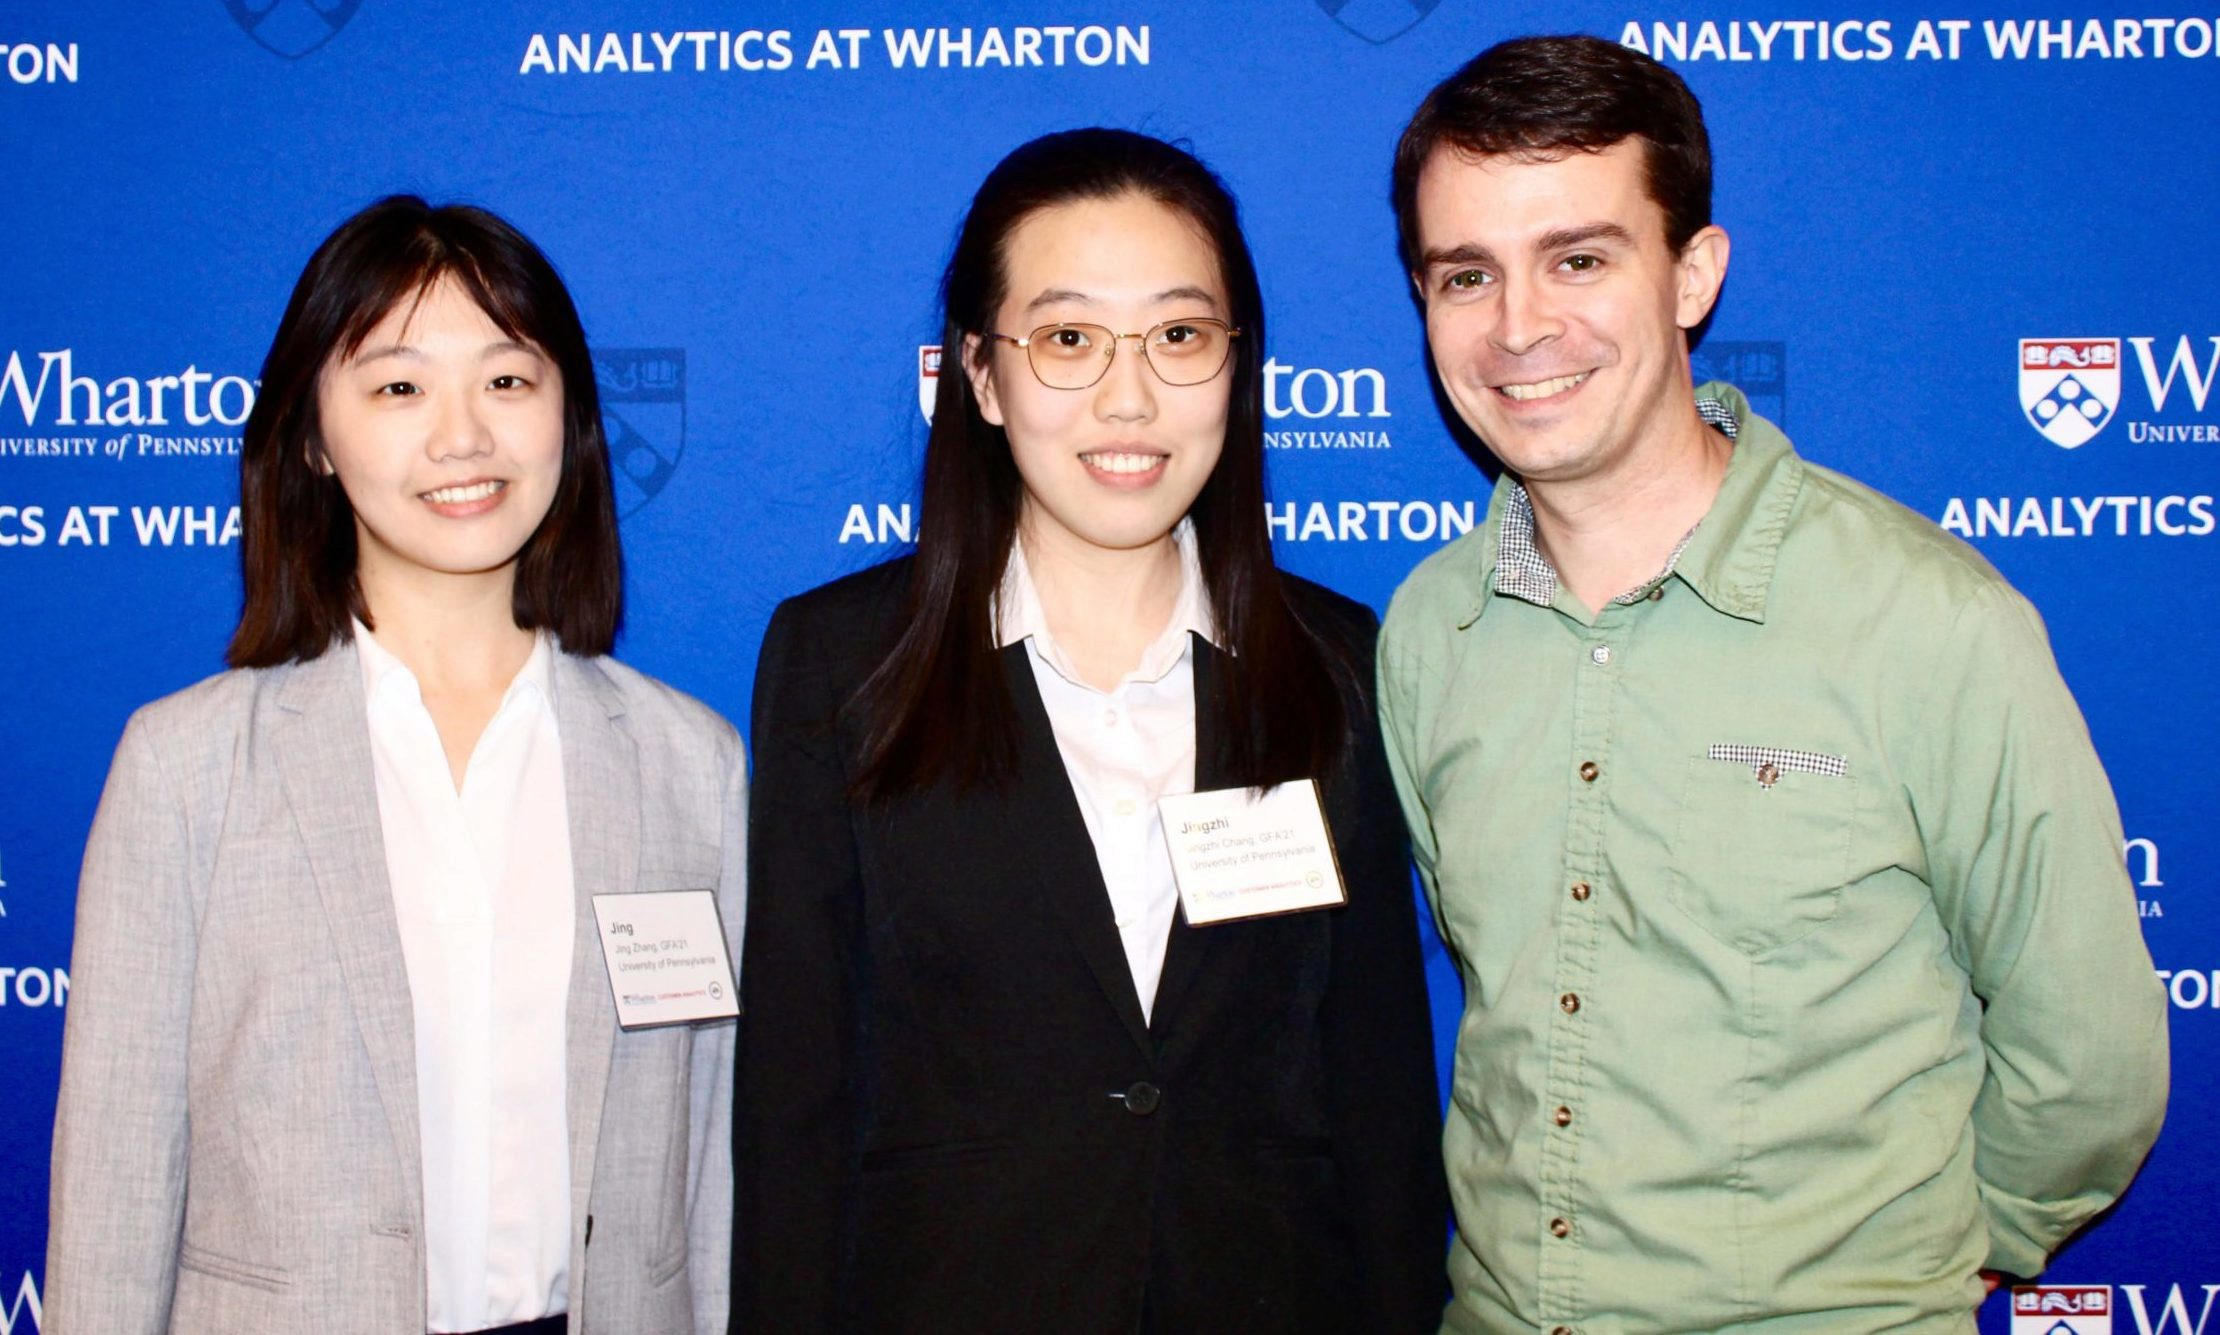 Weitzman students Jing Zhang and Jingzhi Chang with Ben Medler, Principal Data Scientist at Electronic Arts